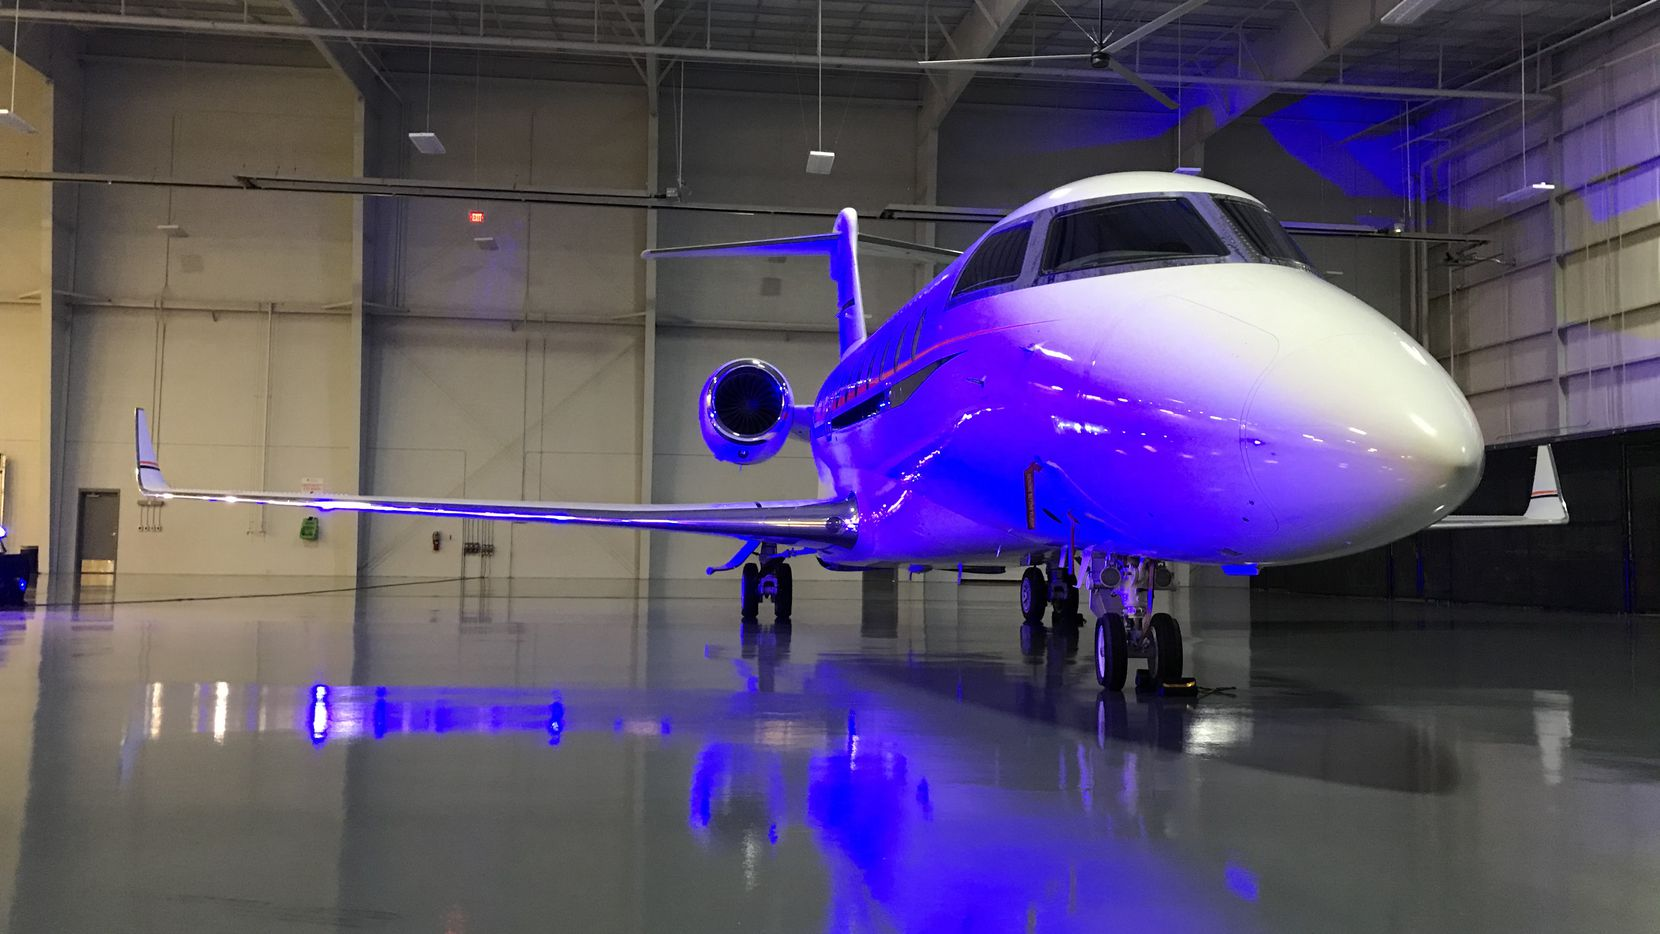 A Gulfstream G650 parked in a hangar at Fort Worth Alliance Airport on Feb. 20, 2020.